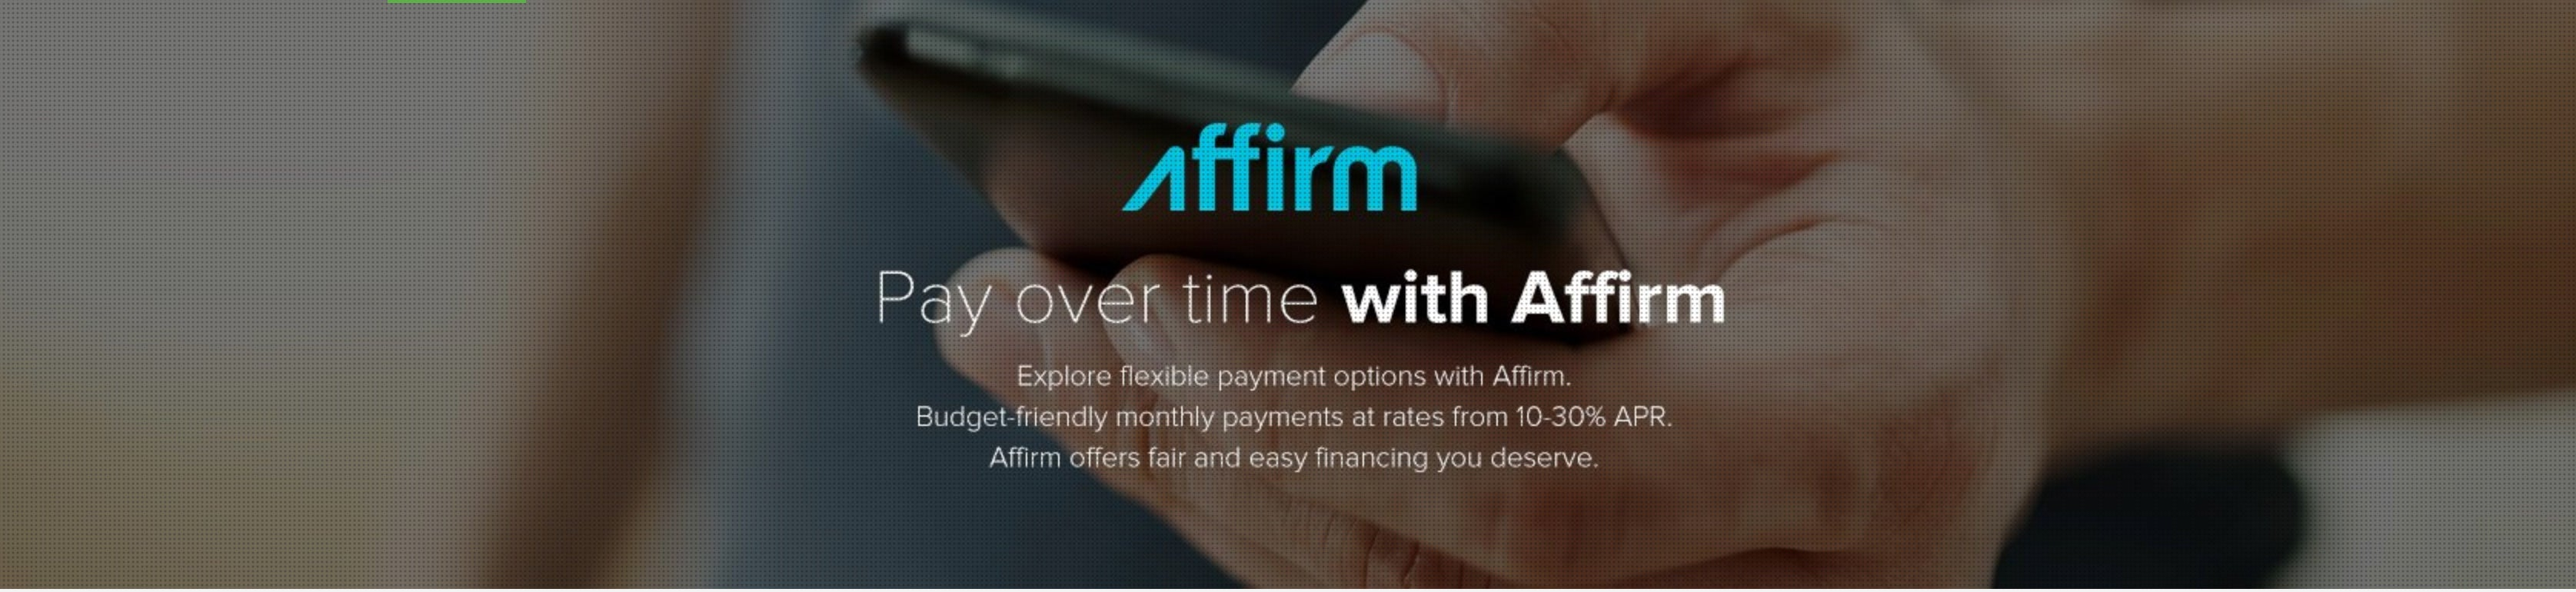 Affirm Shades of Havana Humidor Financing Monthly Payments